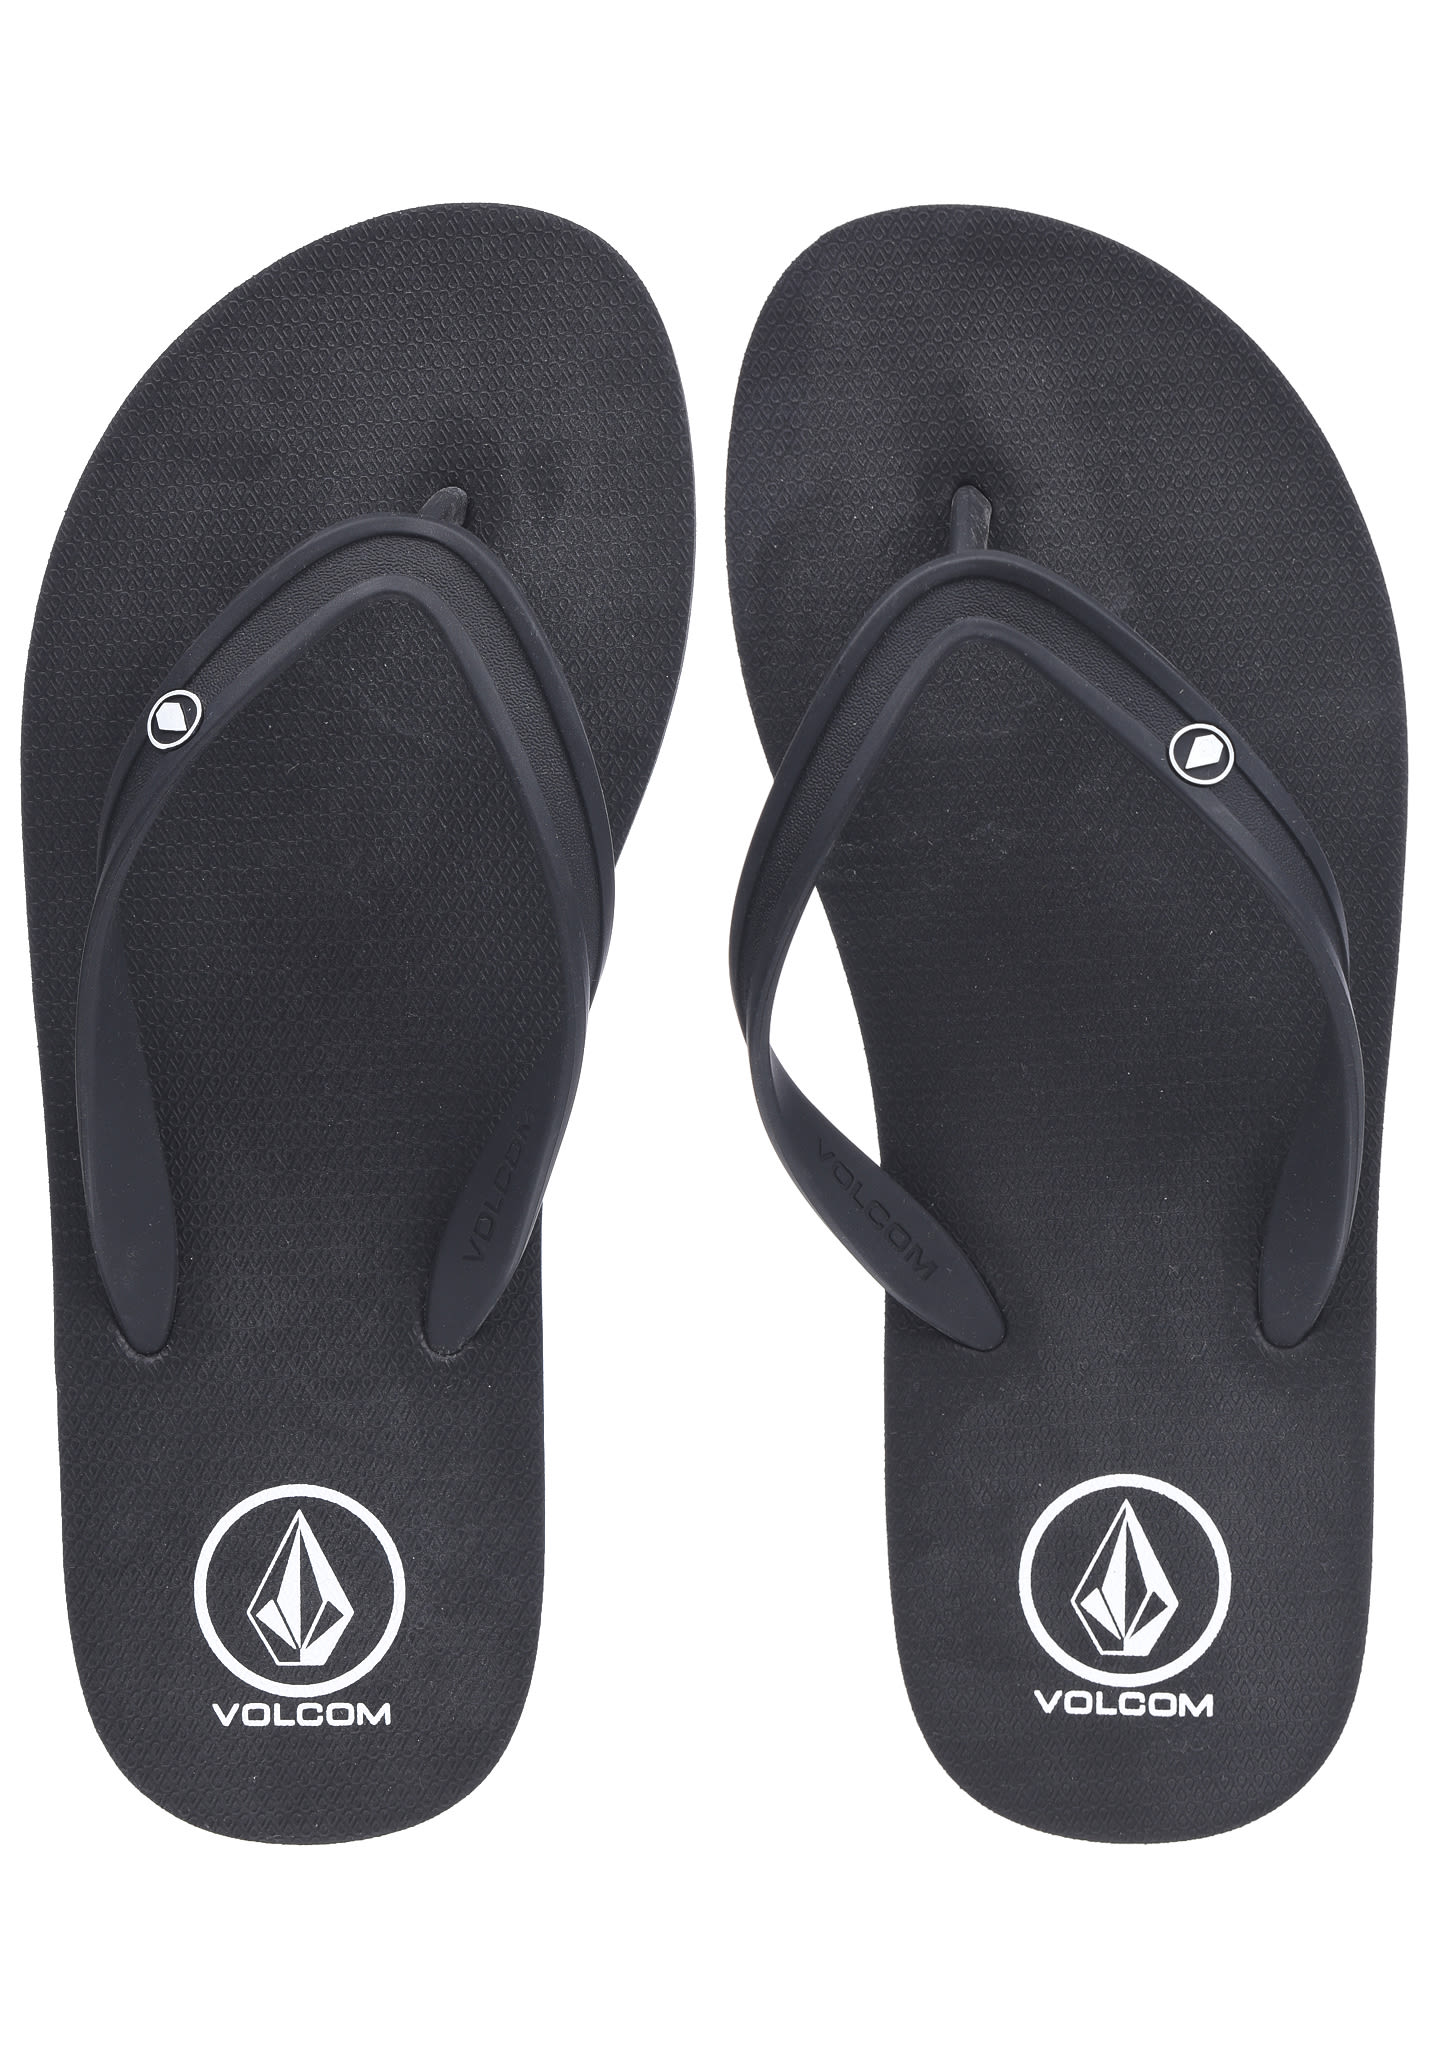 dda05d07f84ba0 Volcom Rocker 2 Solid - Sandals for Men - Black - Planet Sports